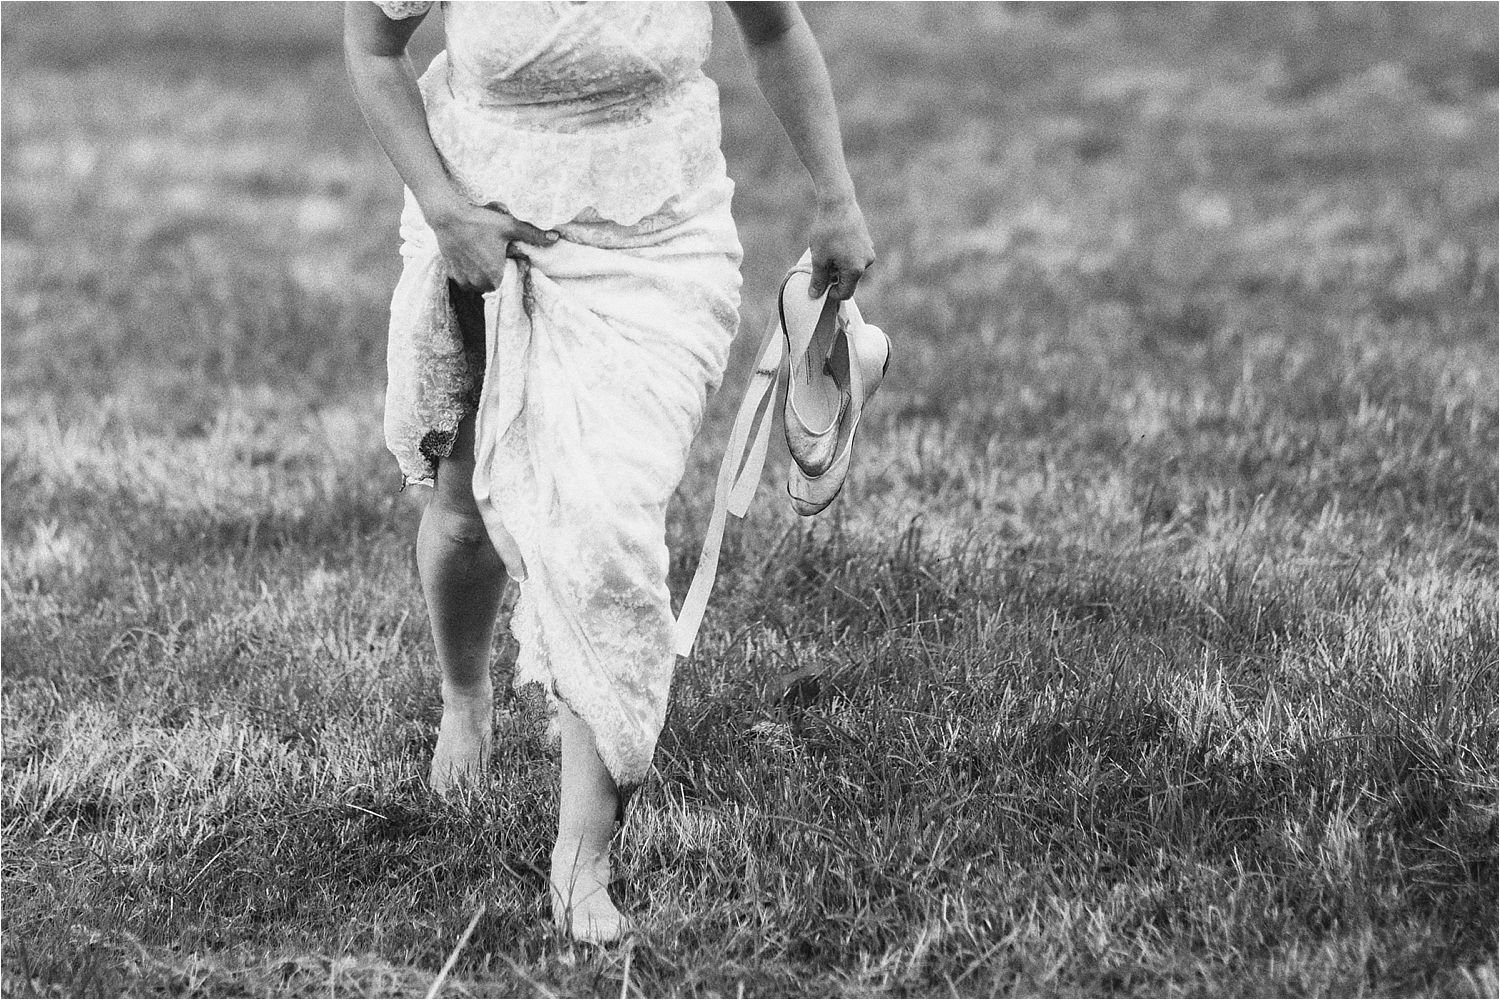 Bride crossing grass with wedding shoes in hand at rural wedding venue in Glossop